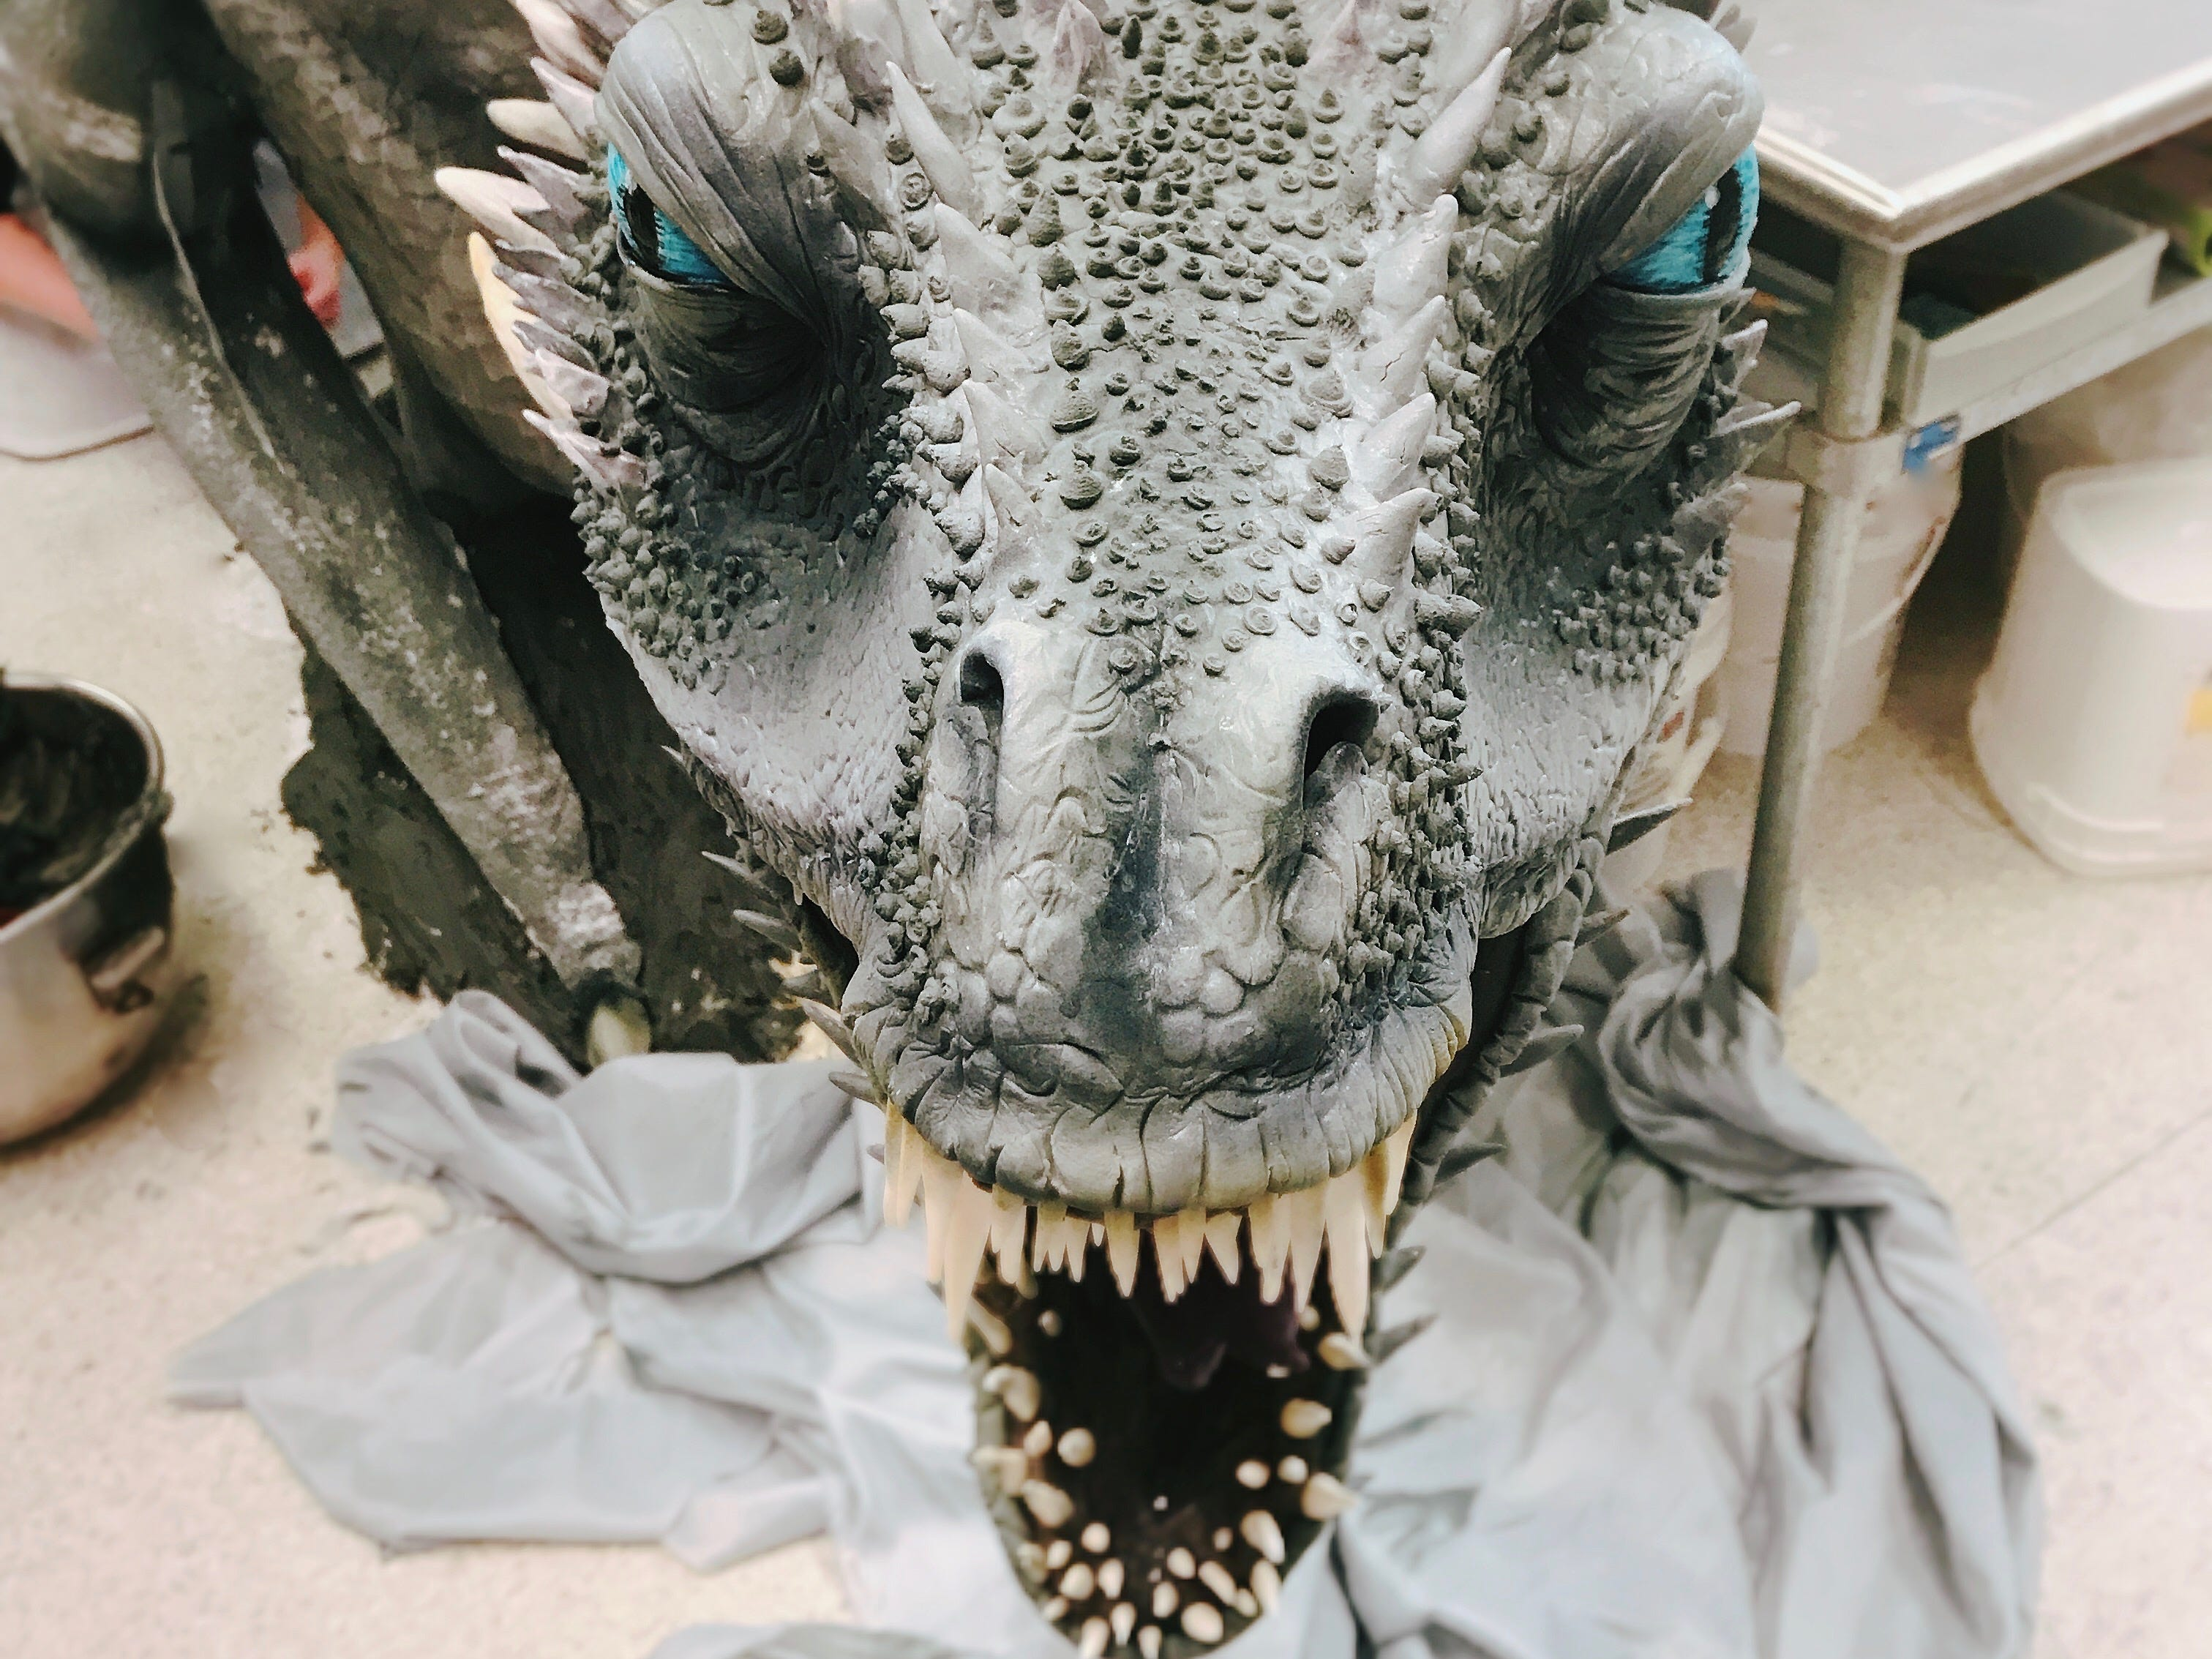 A close-up of the dragon Viserion's head in progress.